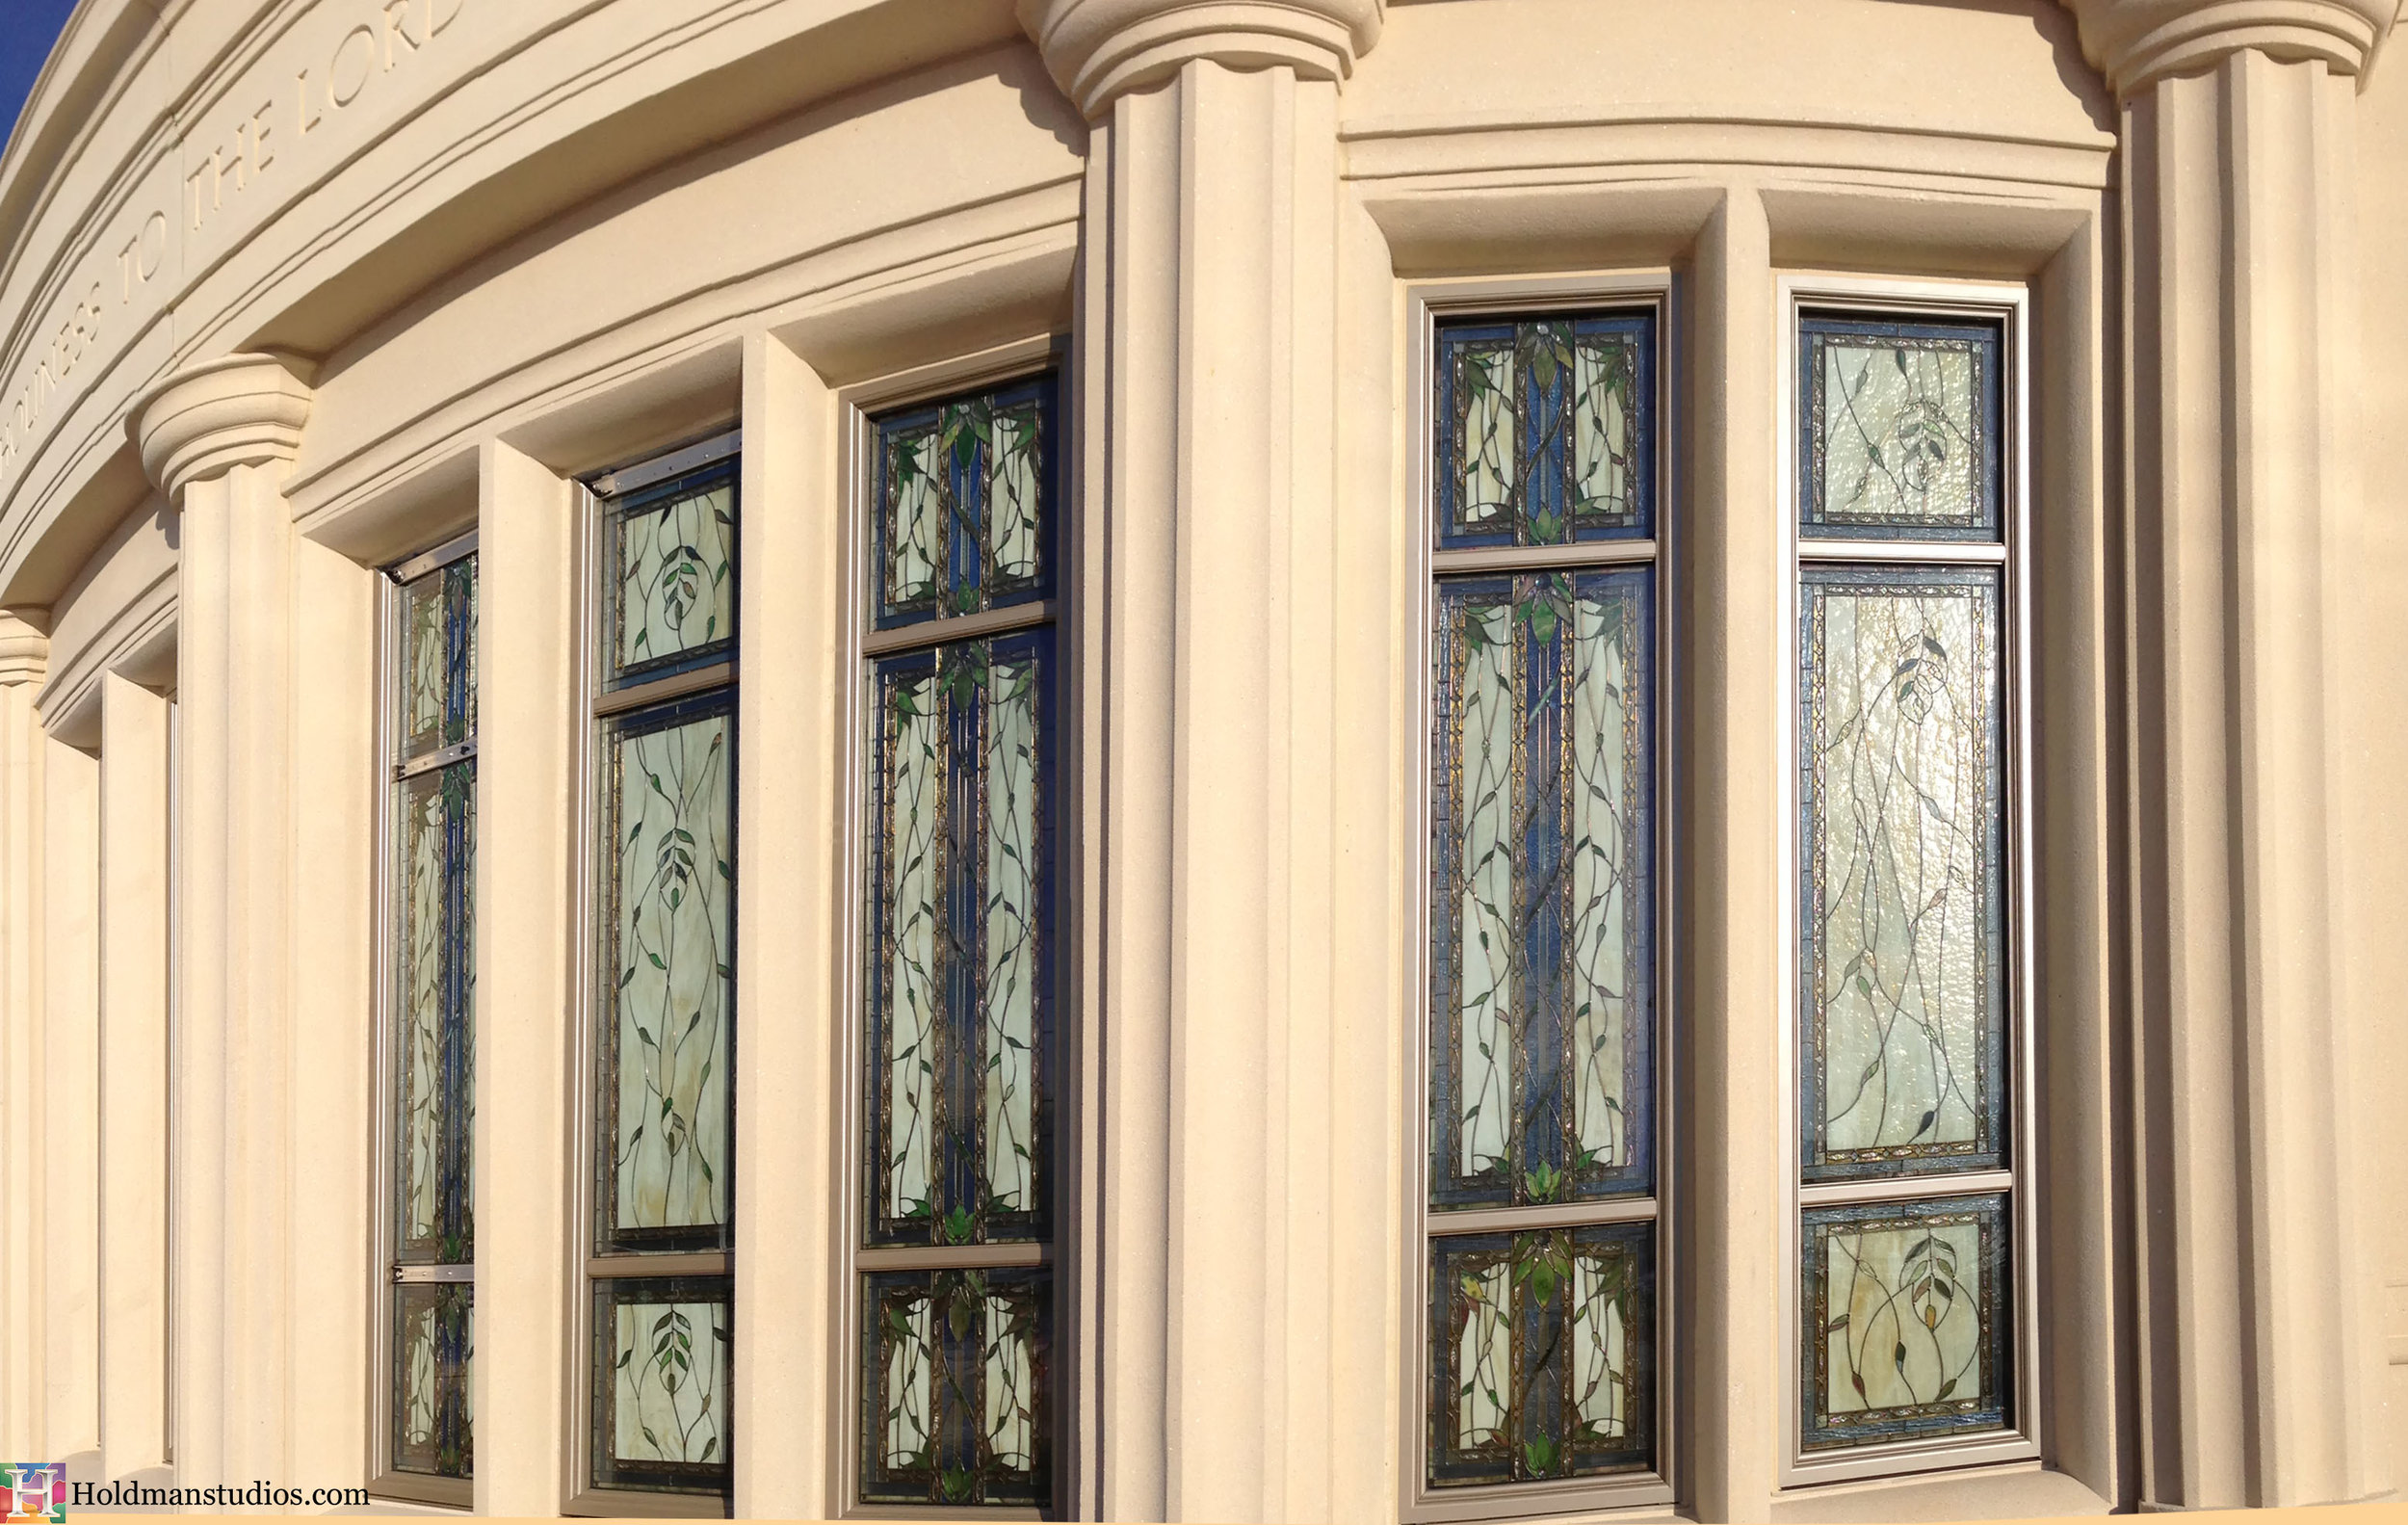 Holdman_Studios_Stained_Art_Glass_Payson_Utah_Temple_Inscription_Apple_Blossoms_Leaves_DNA_Spiral_Exterior_Windows_Closeup2.jpg